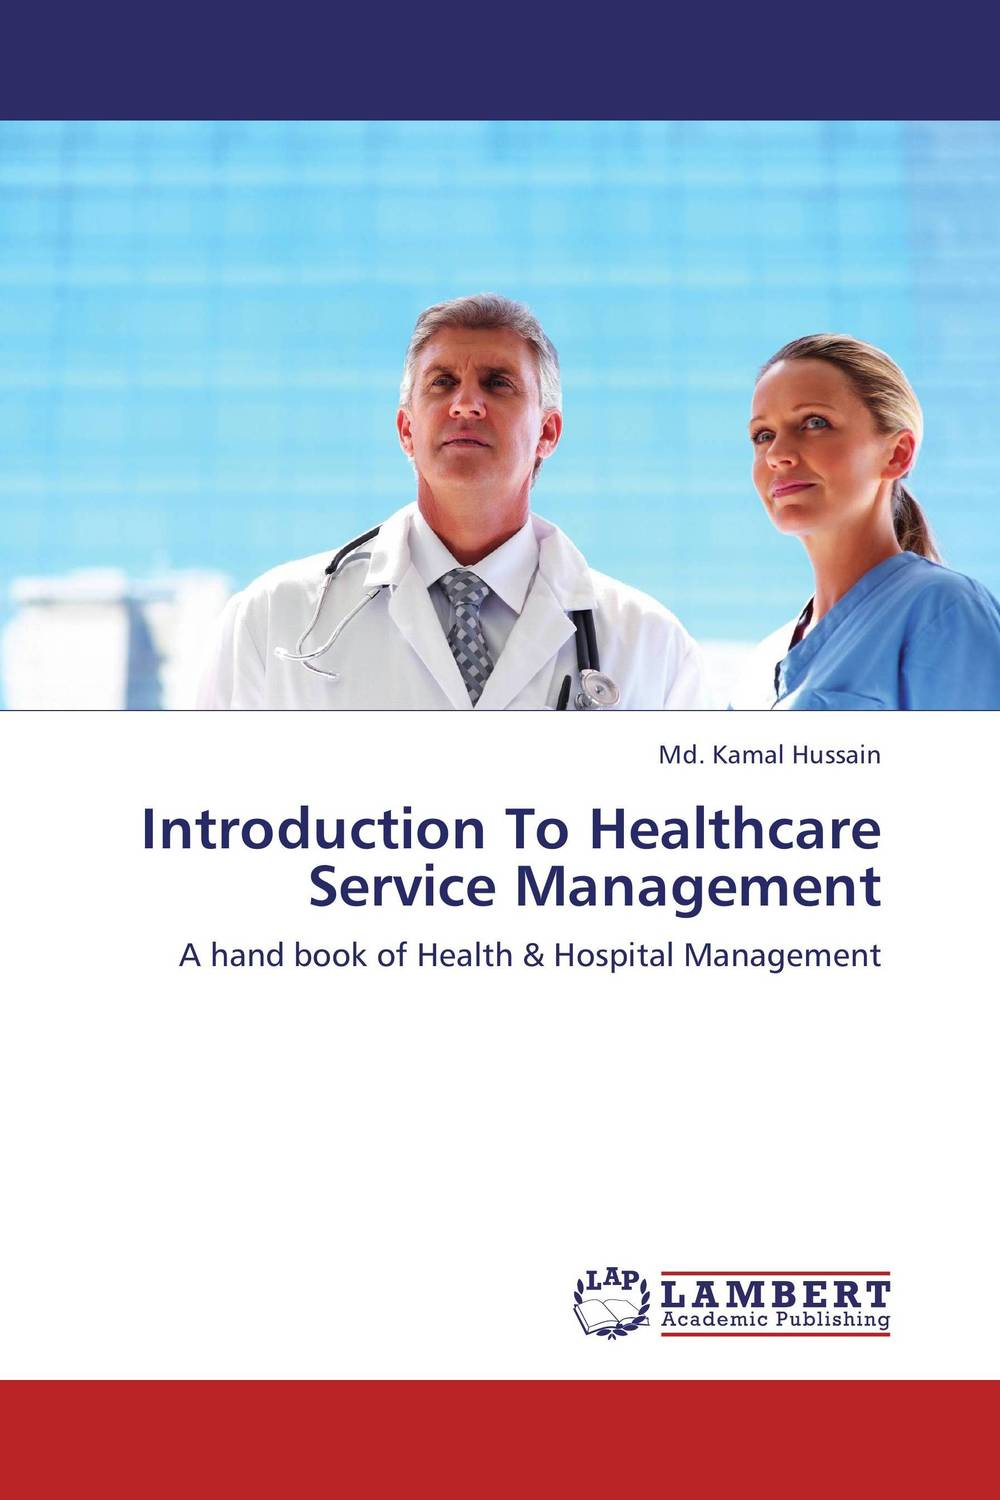 Introduction To Healthcare Service Management michel chevalier luxury retail management how the world s top brands provide quality product and service support